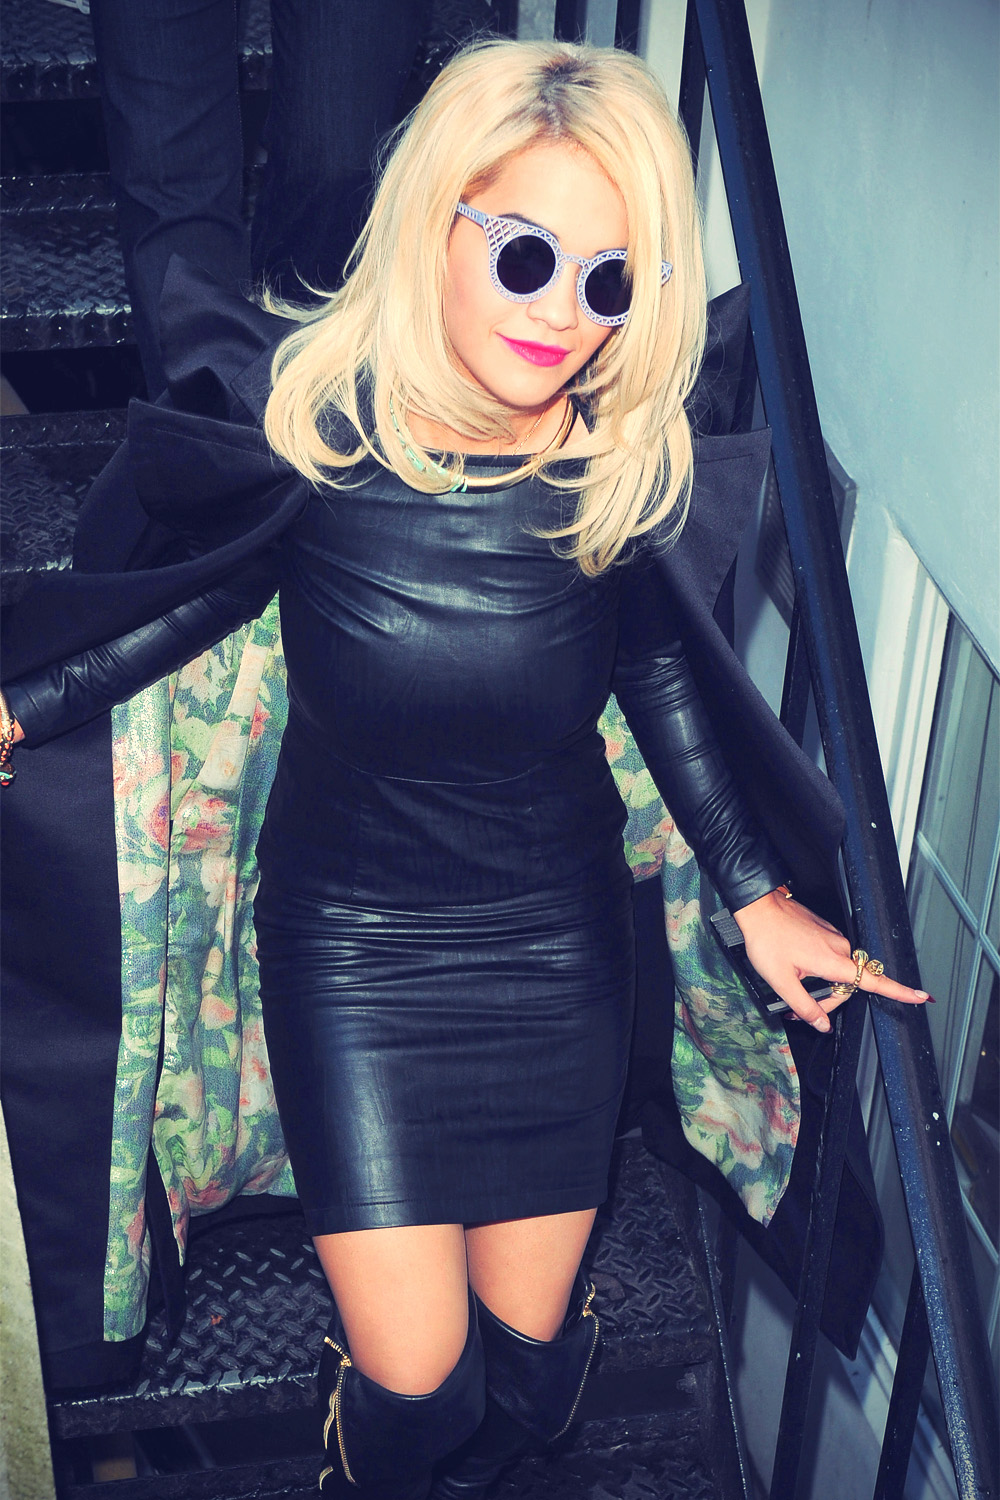 Rita Ora at BBC Radio 1 in London